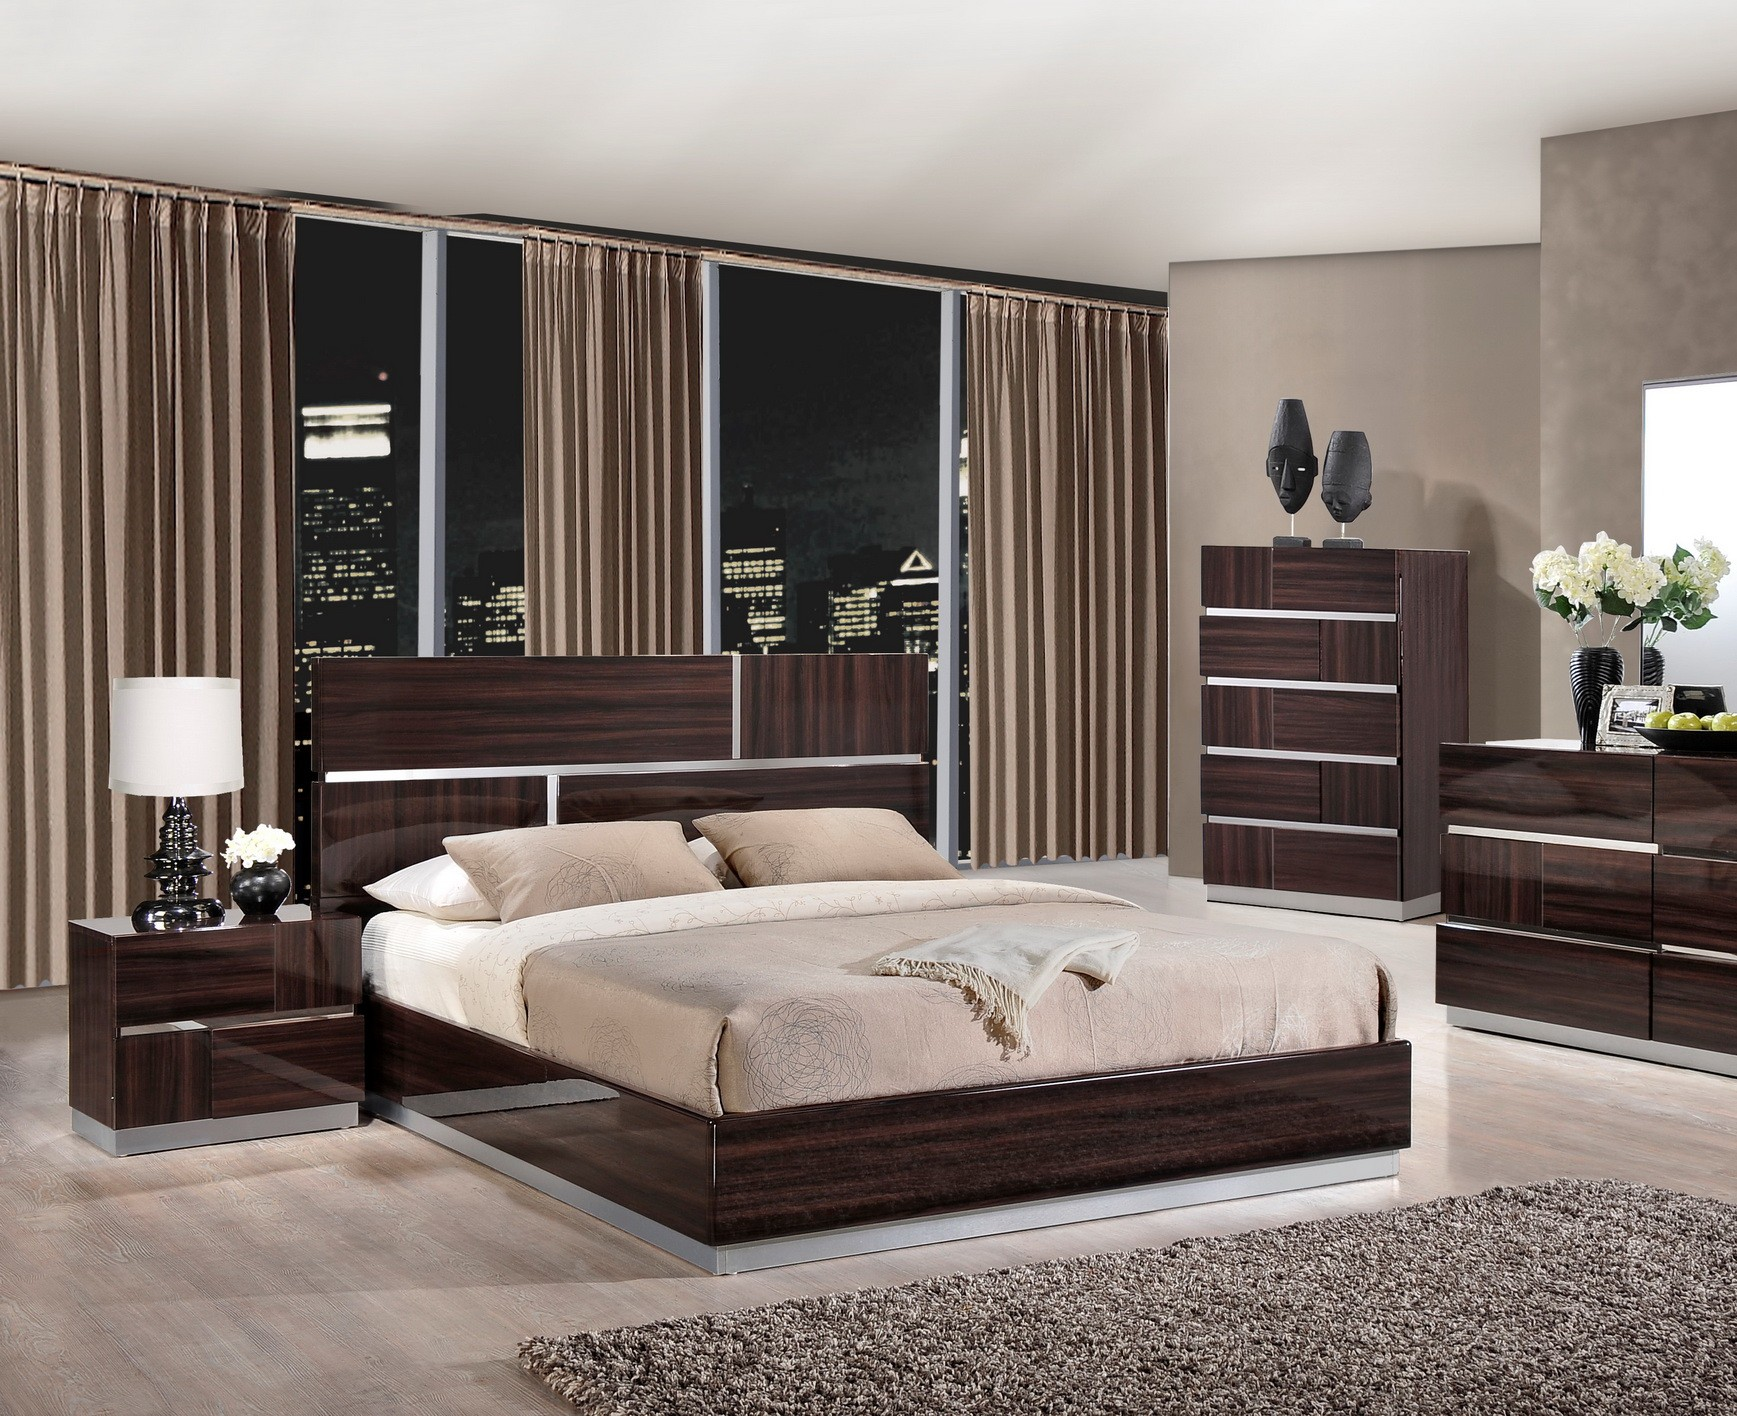 Tribeca Modern Platform Bed by Global USA